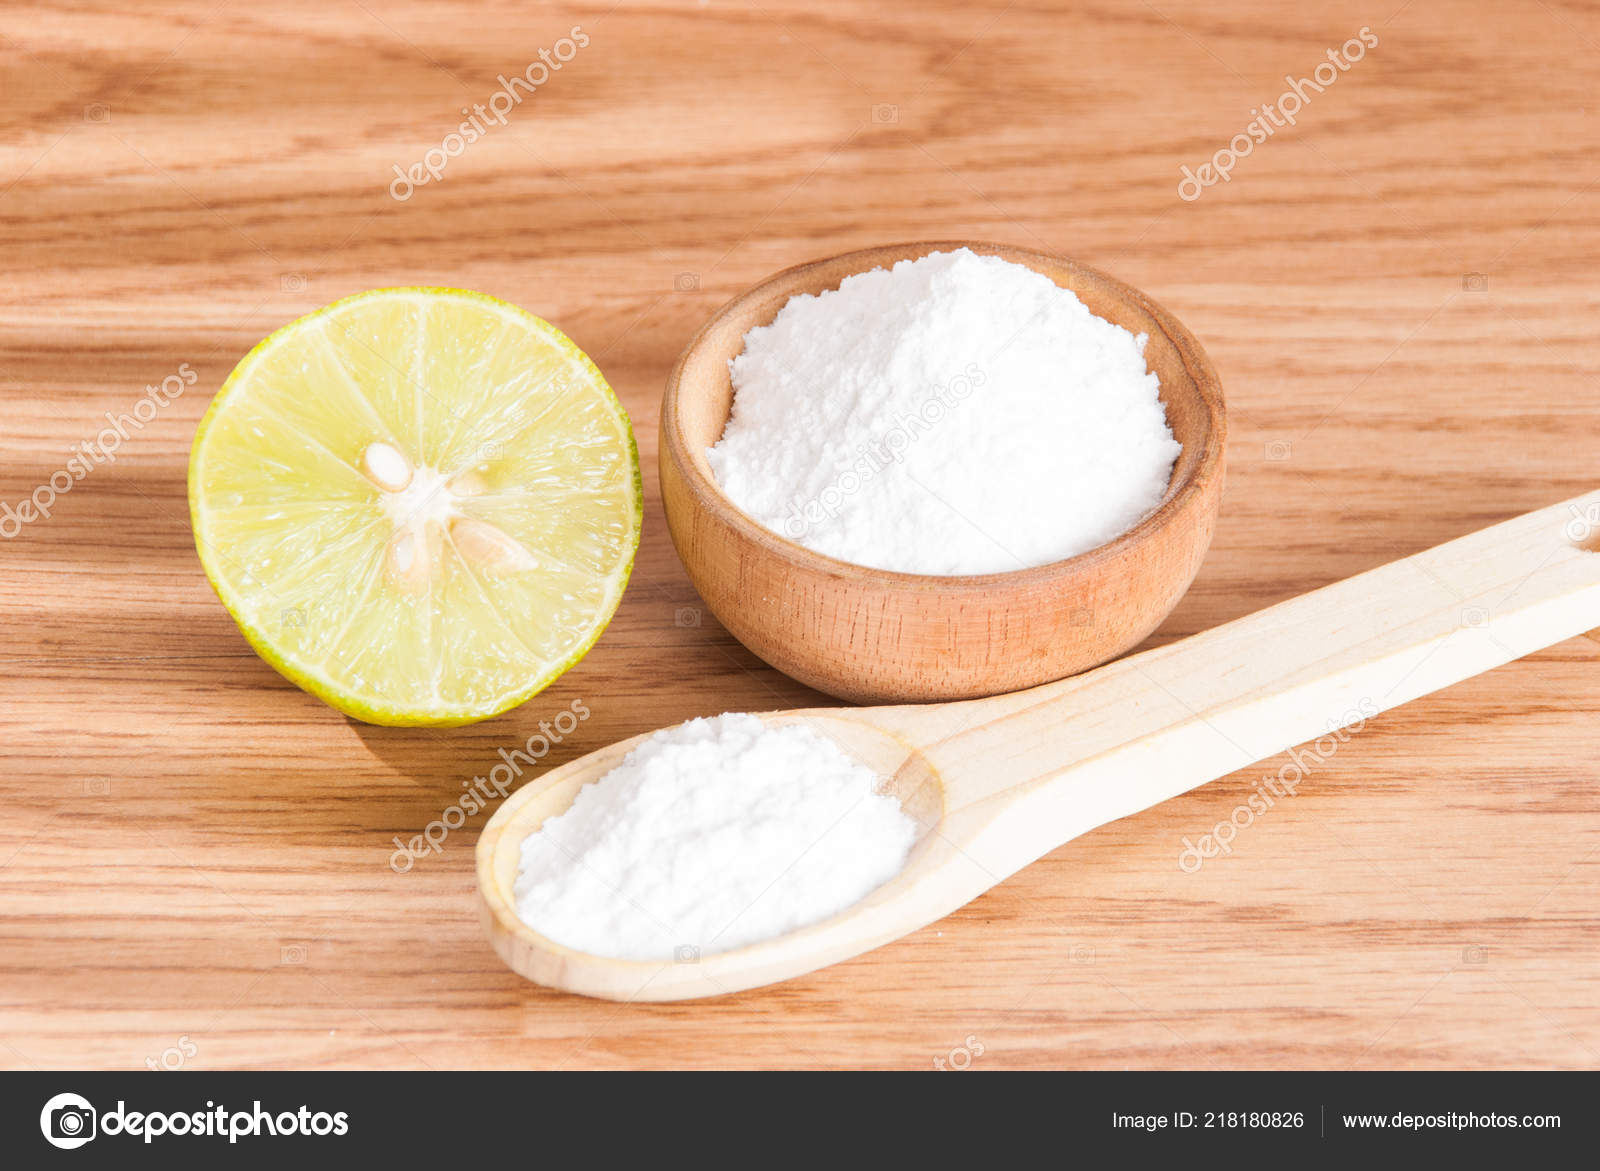 Baking Soda Sodium Bicarbonate — Stock Photo © JFCFOTOGRAFIC